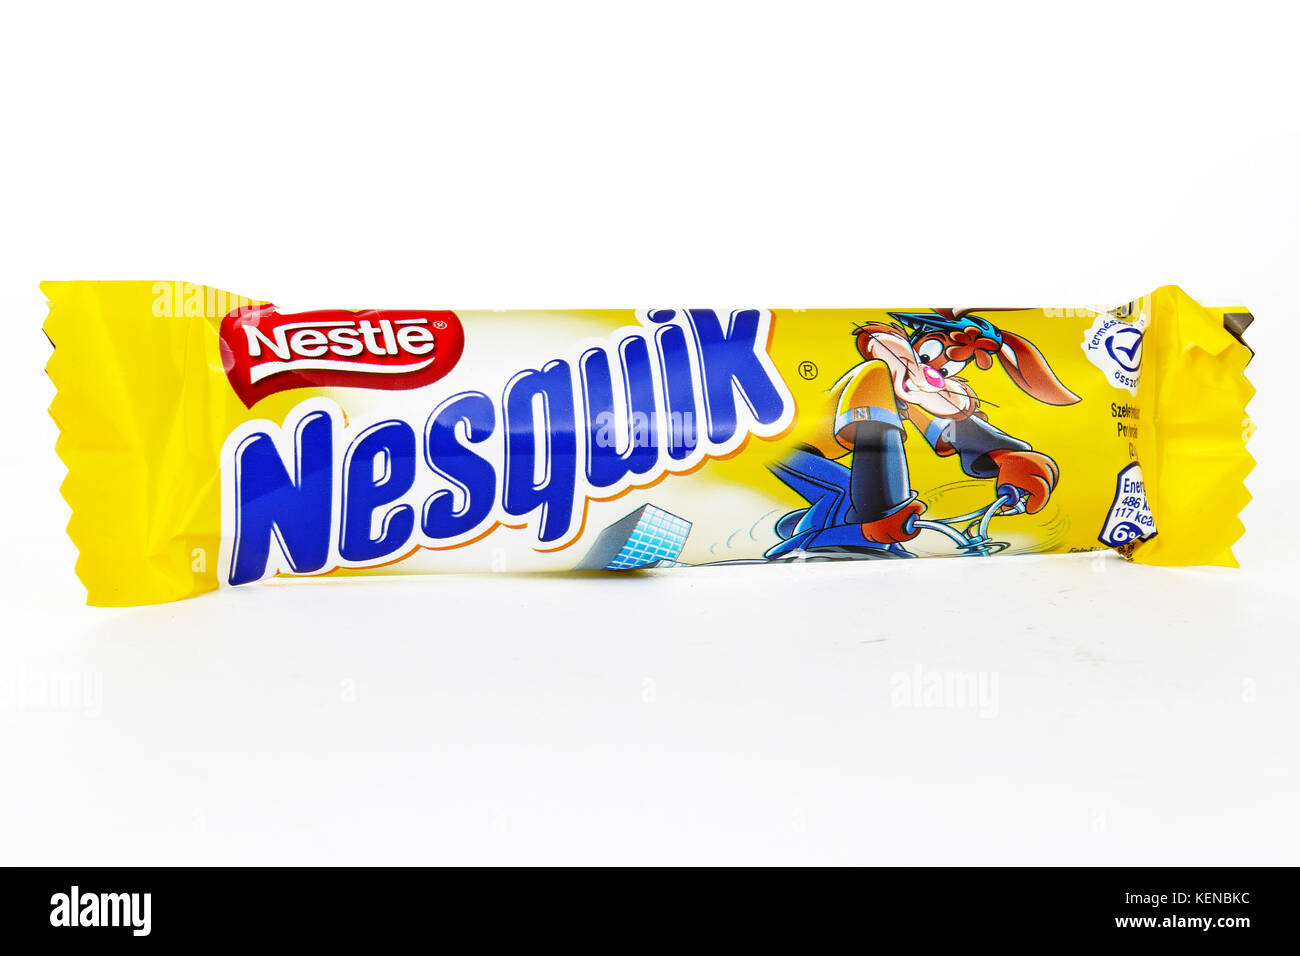 nestle background Nestlé and gerber both have long, rich histories of supporting the nutrition,  healthy growth and development of infants and toddlers in 1867, henri nestlé,.